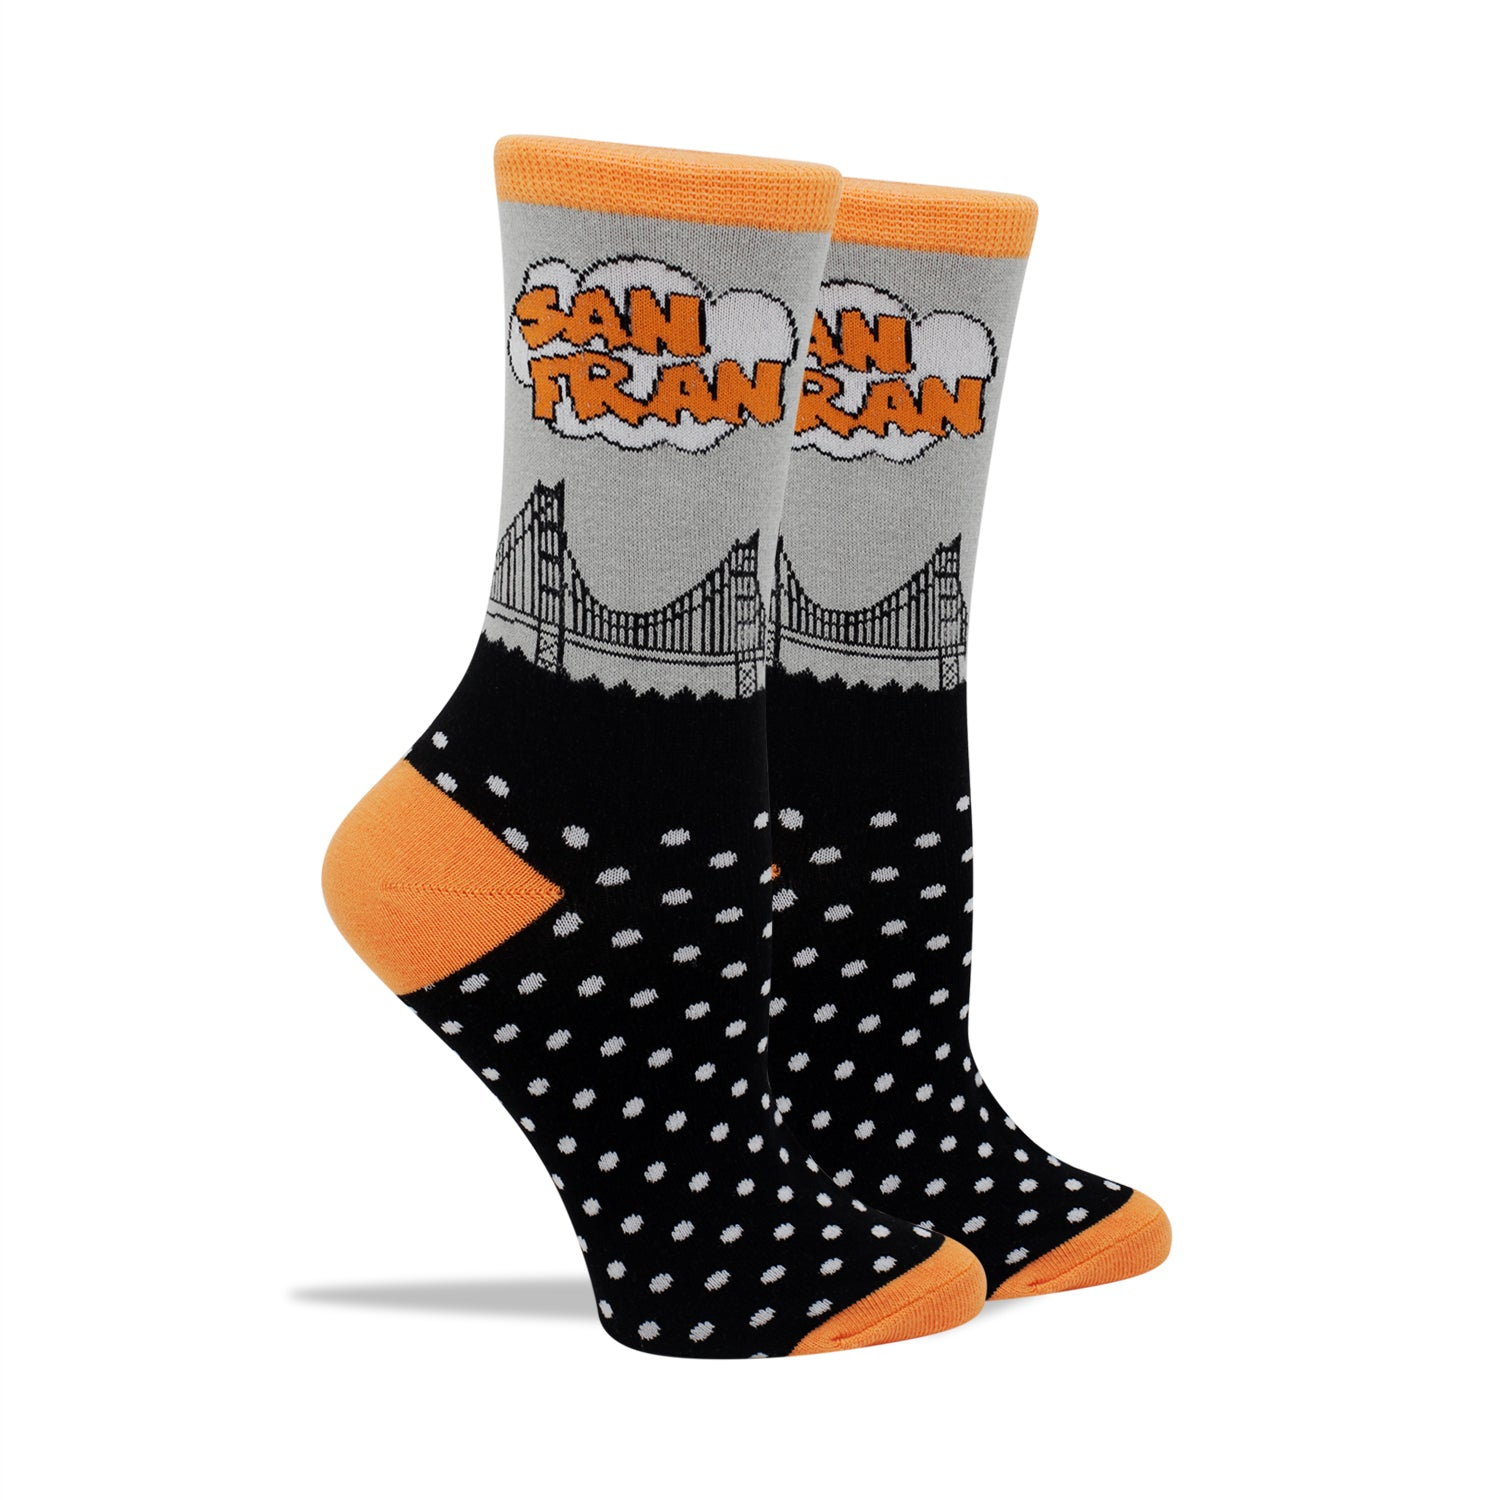 San Francisco Women's Socks